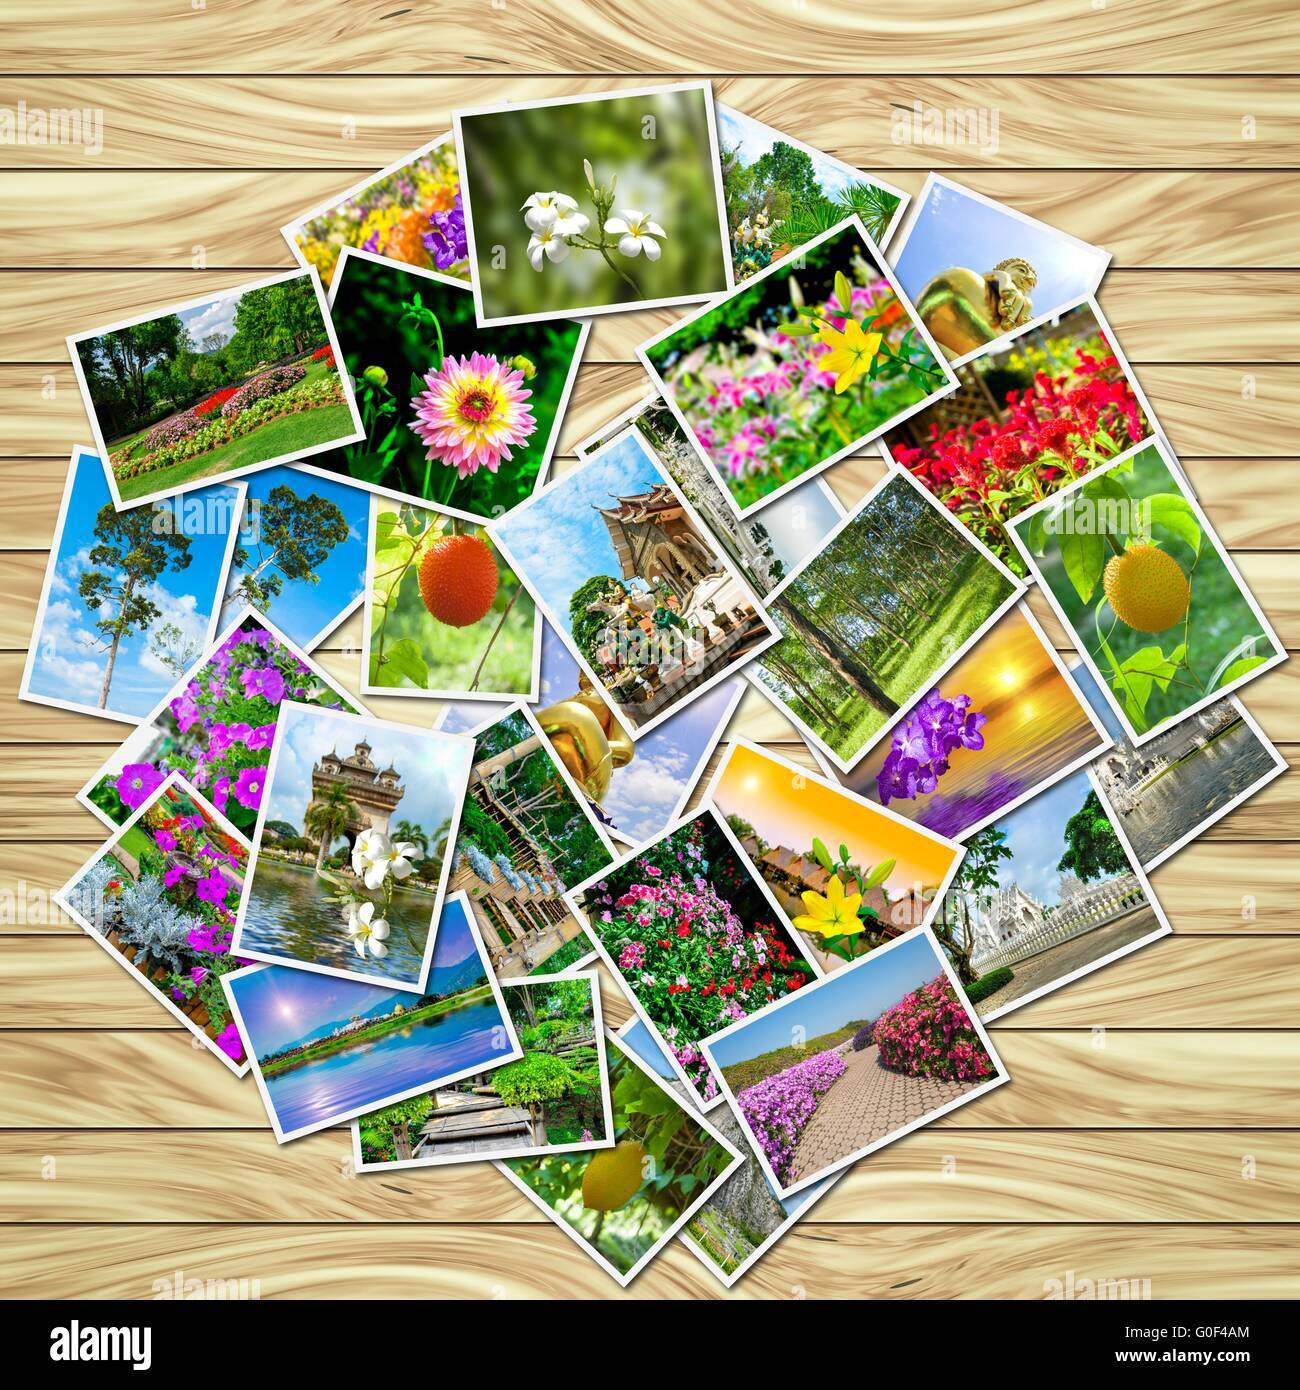 A stack of photographs - Stock Image